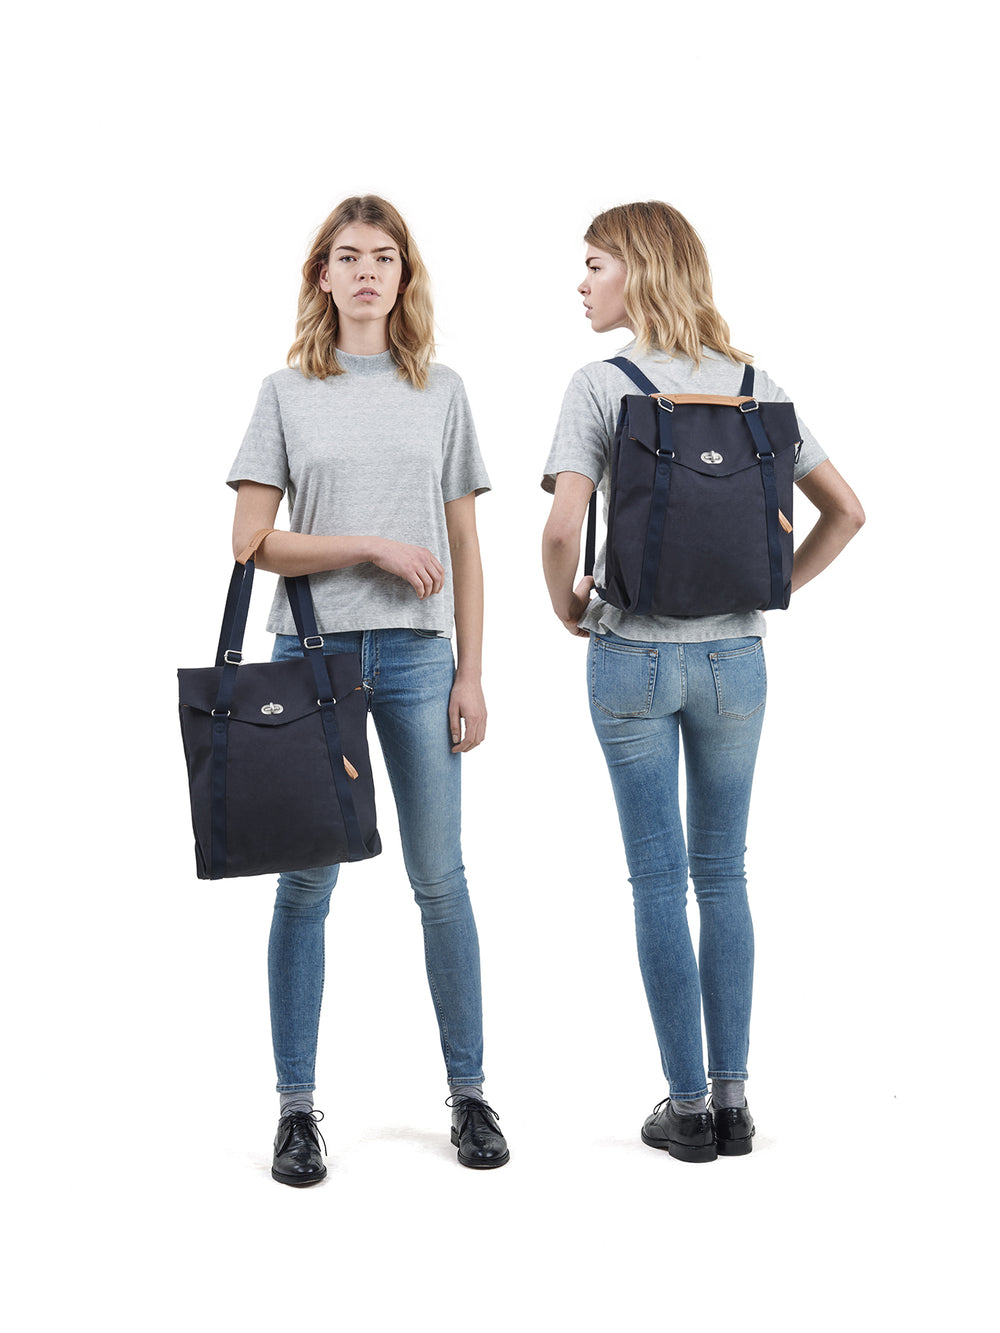 Qwstion Tote Organic Navy is both a tote and a backpack